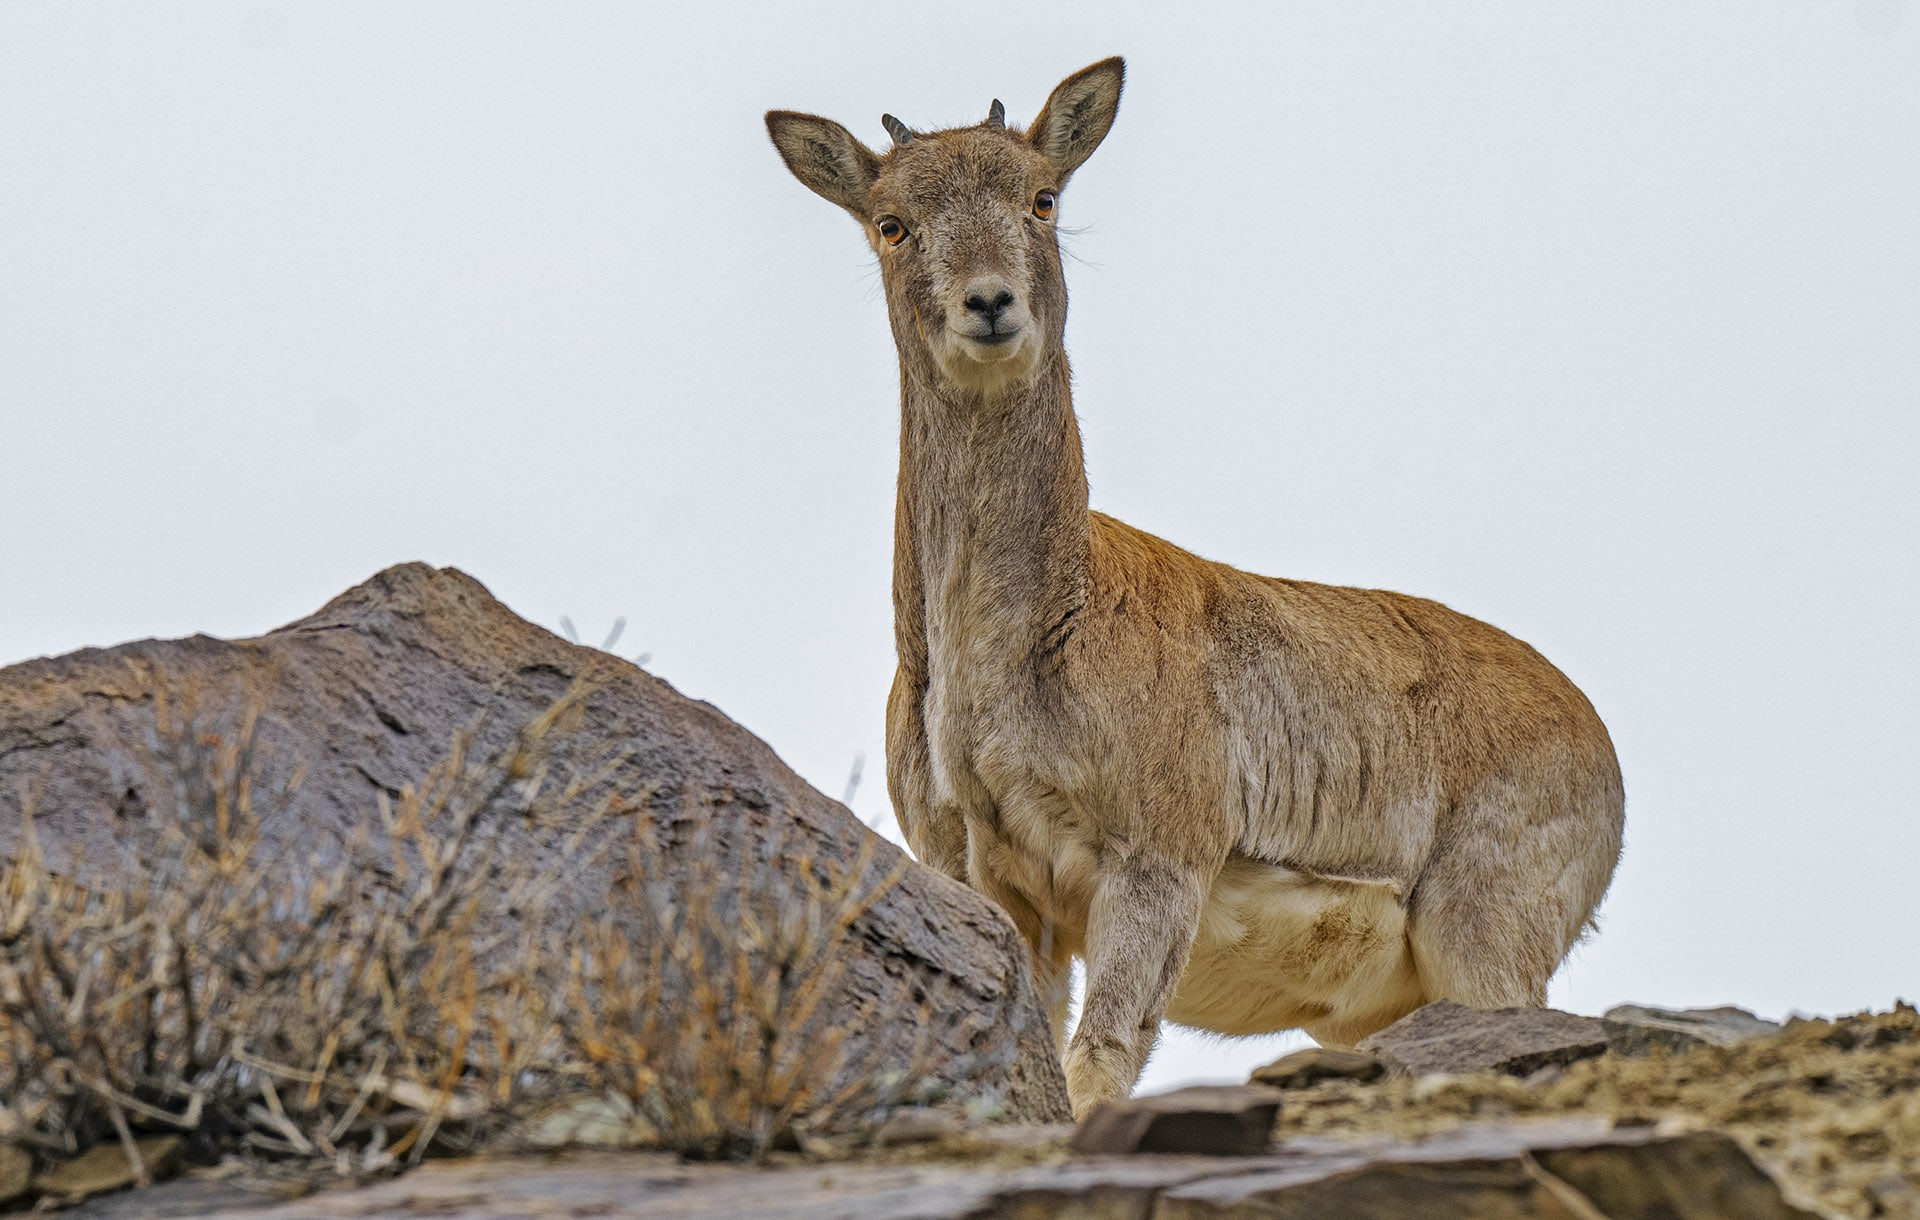 An alert female Ladakh urial looks on. Females tend to be more skittish as they have the added responsibility of ensuring the safety of their offspring. Photo: Dhritiman Mukherjee